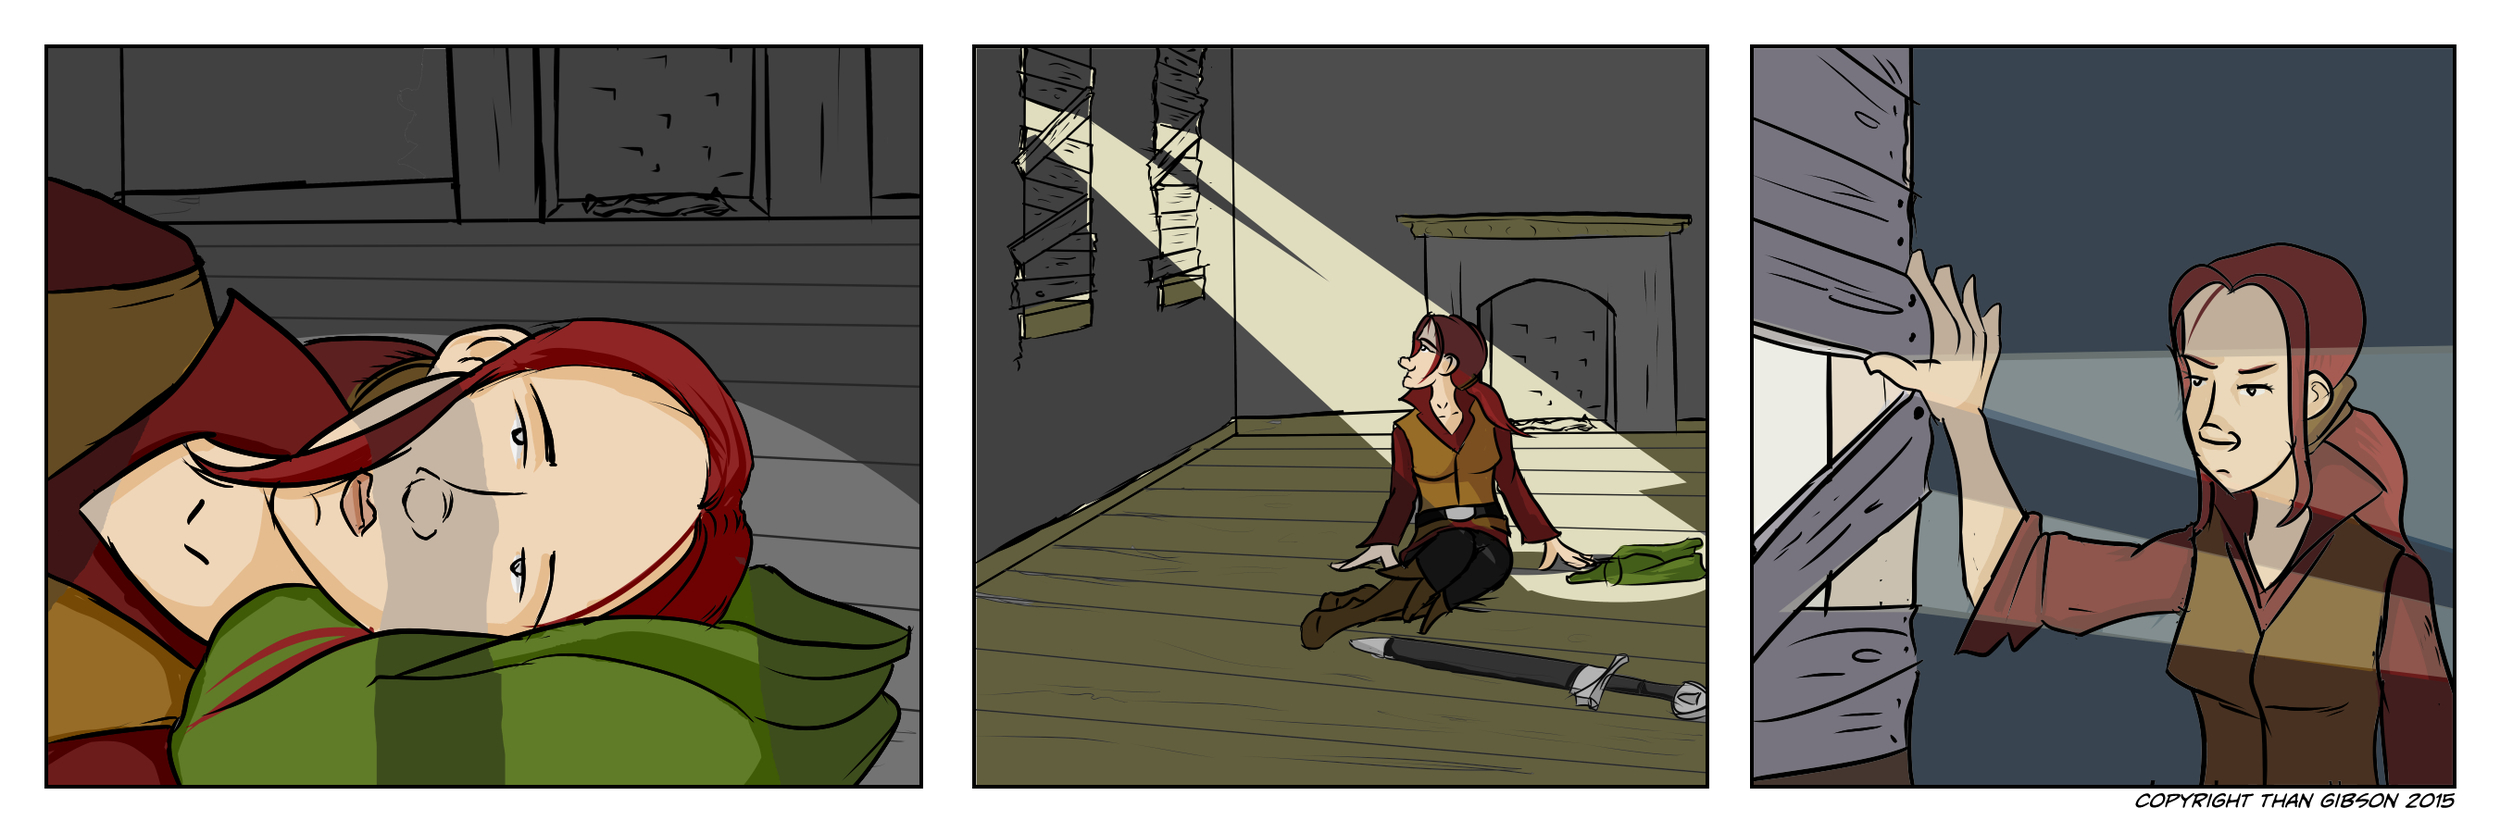 A Chronicle of Thieves -Chapter 2, Strip 02